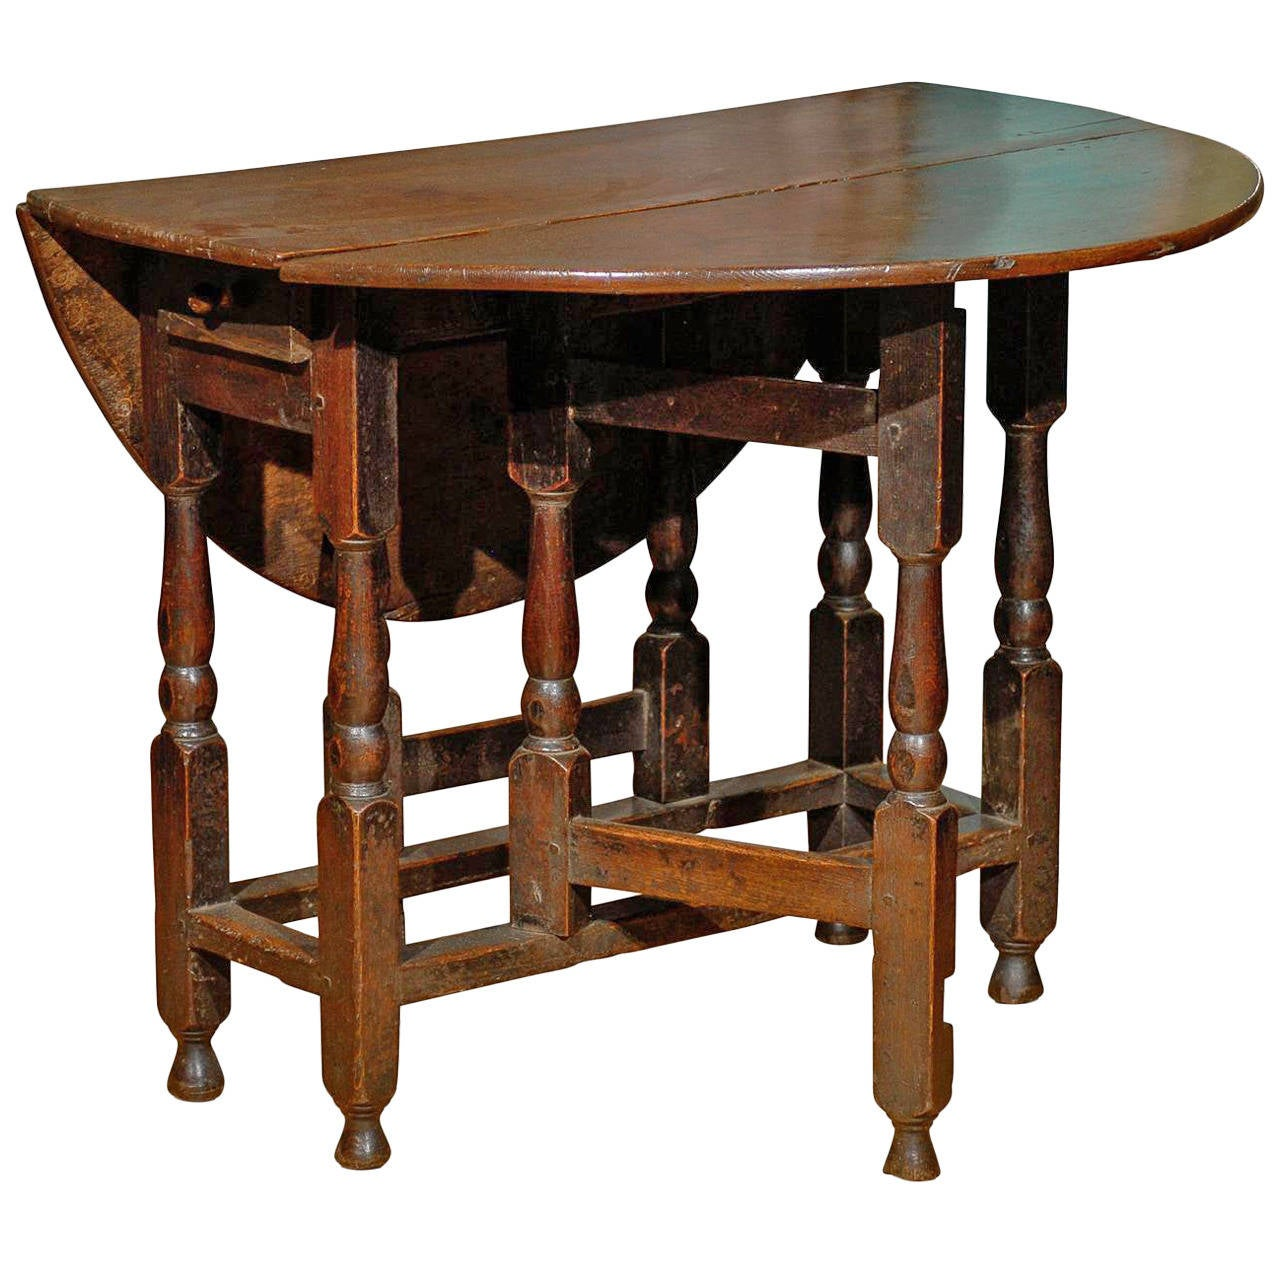 English Gateleg Table 19th Century at 1stdibs : 2234172l from www.1stdibs.com size 1280 x 1280 jpeg 166kB